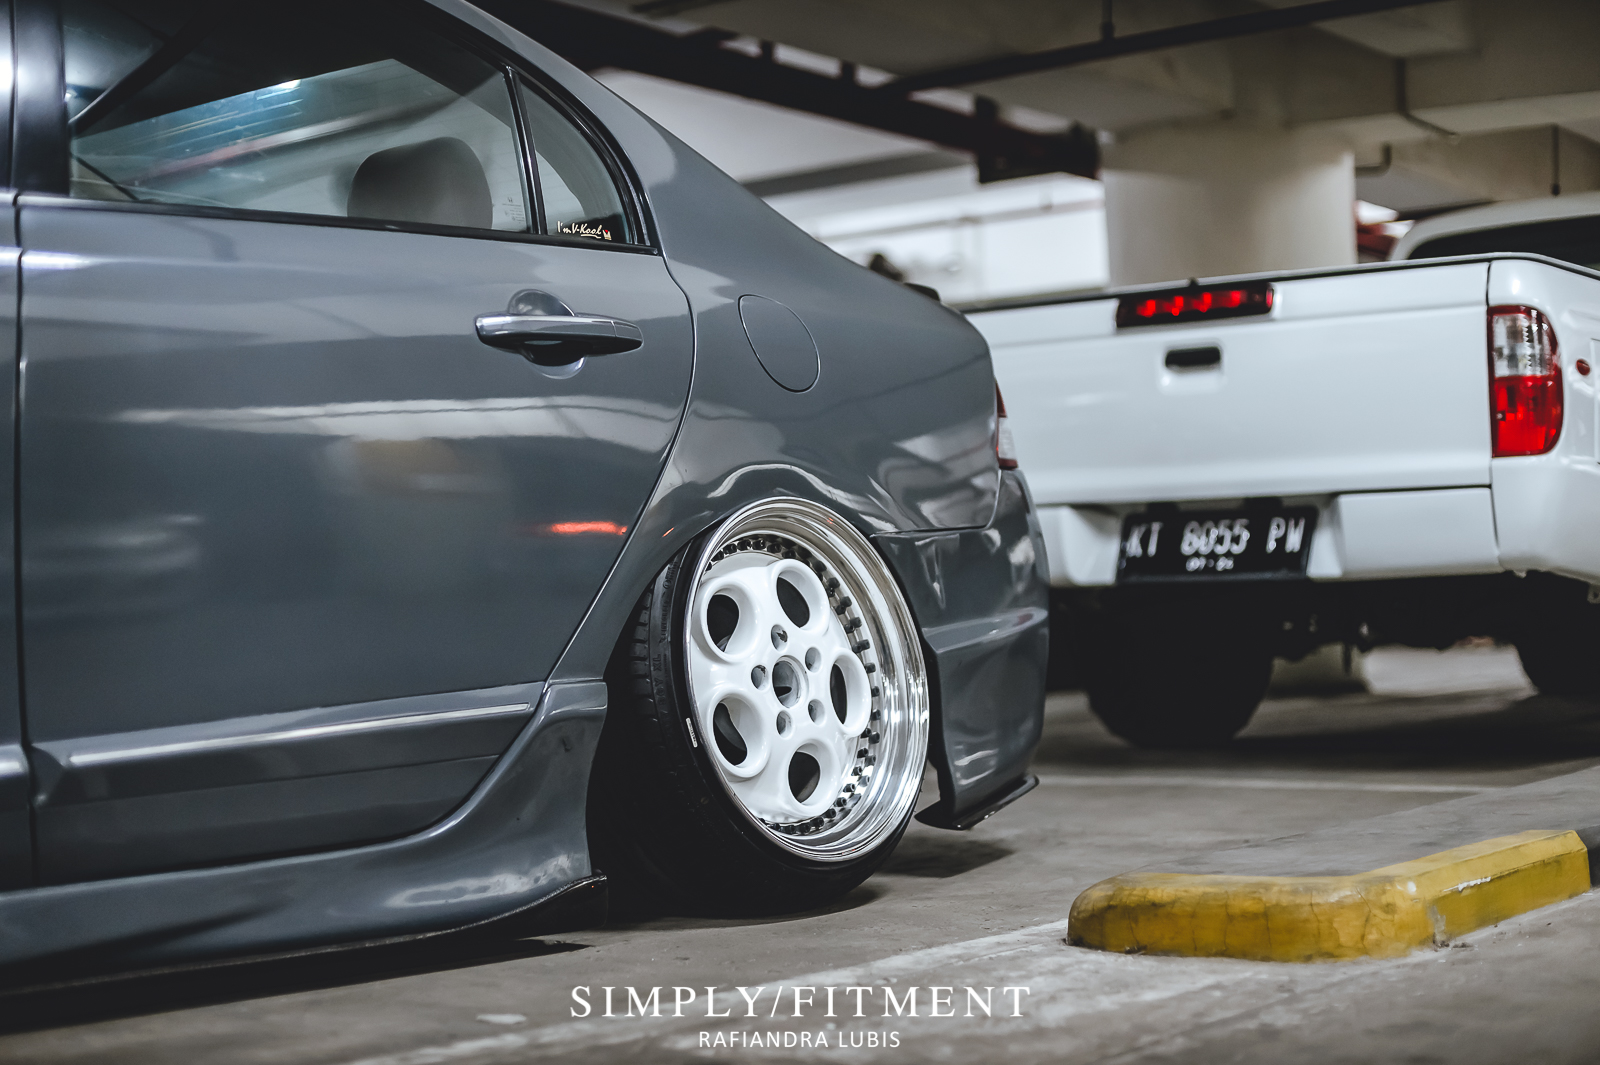 LOWFITMENT DAY 12 DAY 1 AT P2 KUNINGAN CITY MALL - 21 AGUSTUS 2020